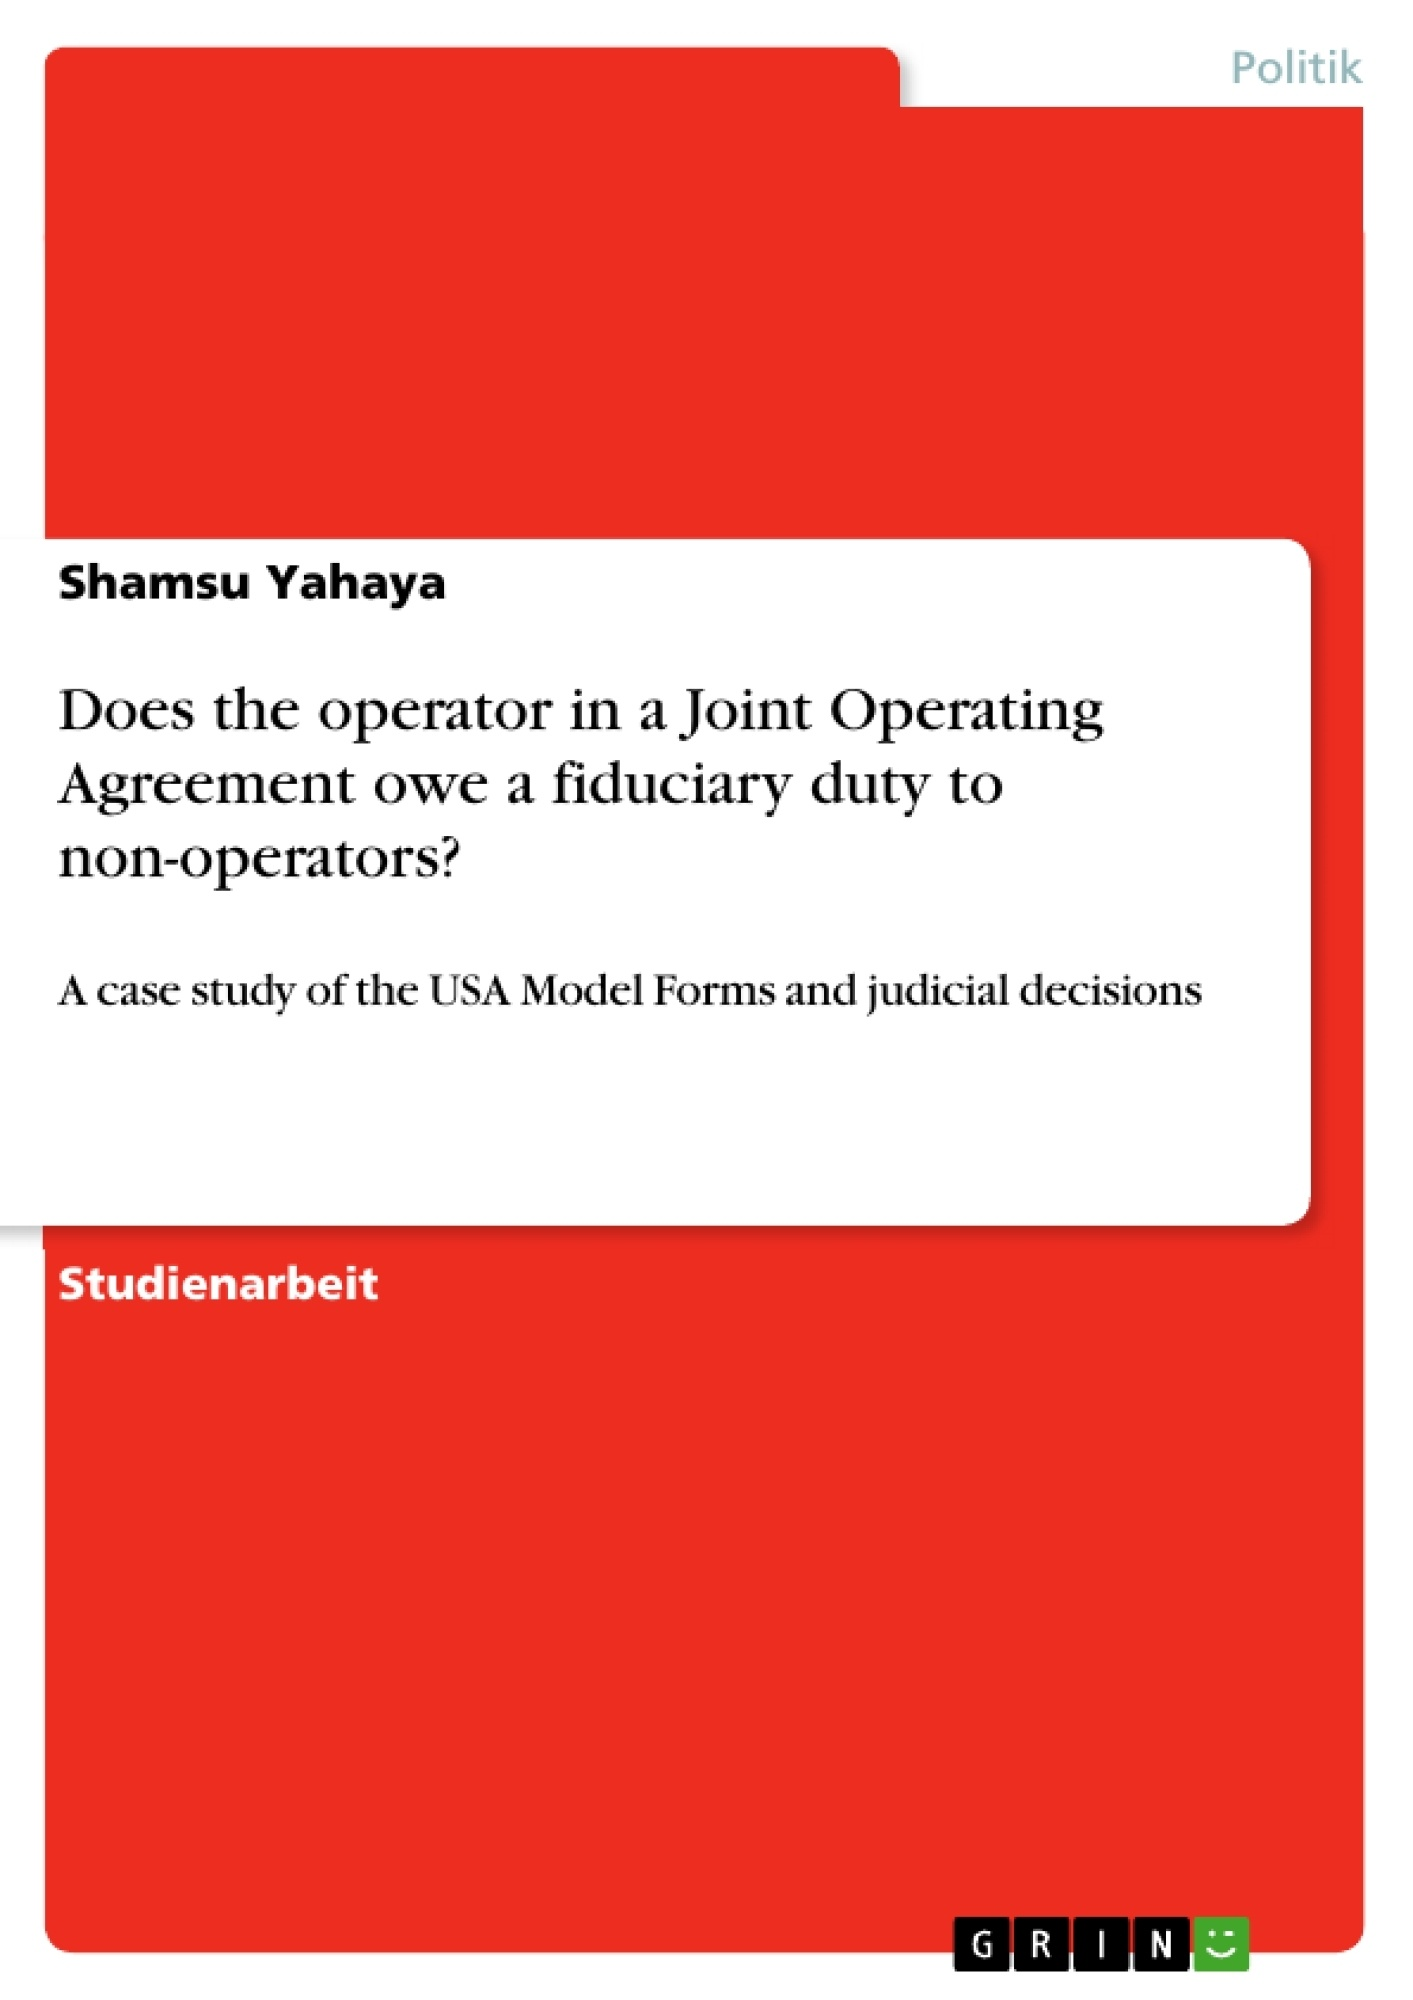 Does The Operator In A Joint Operating Agreement Owe A Fiduciary